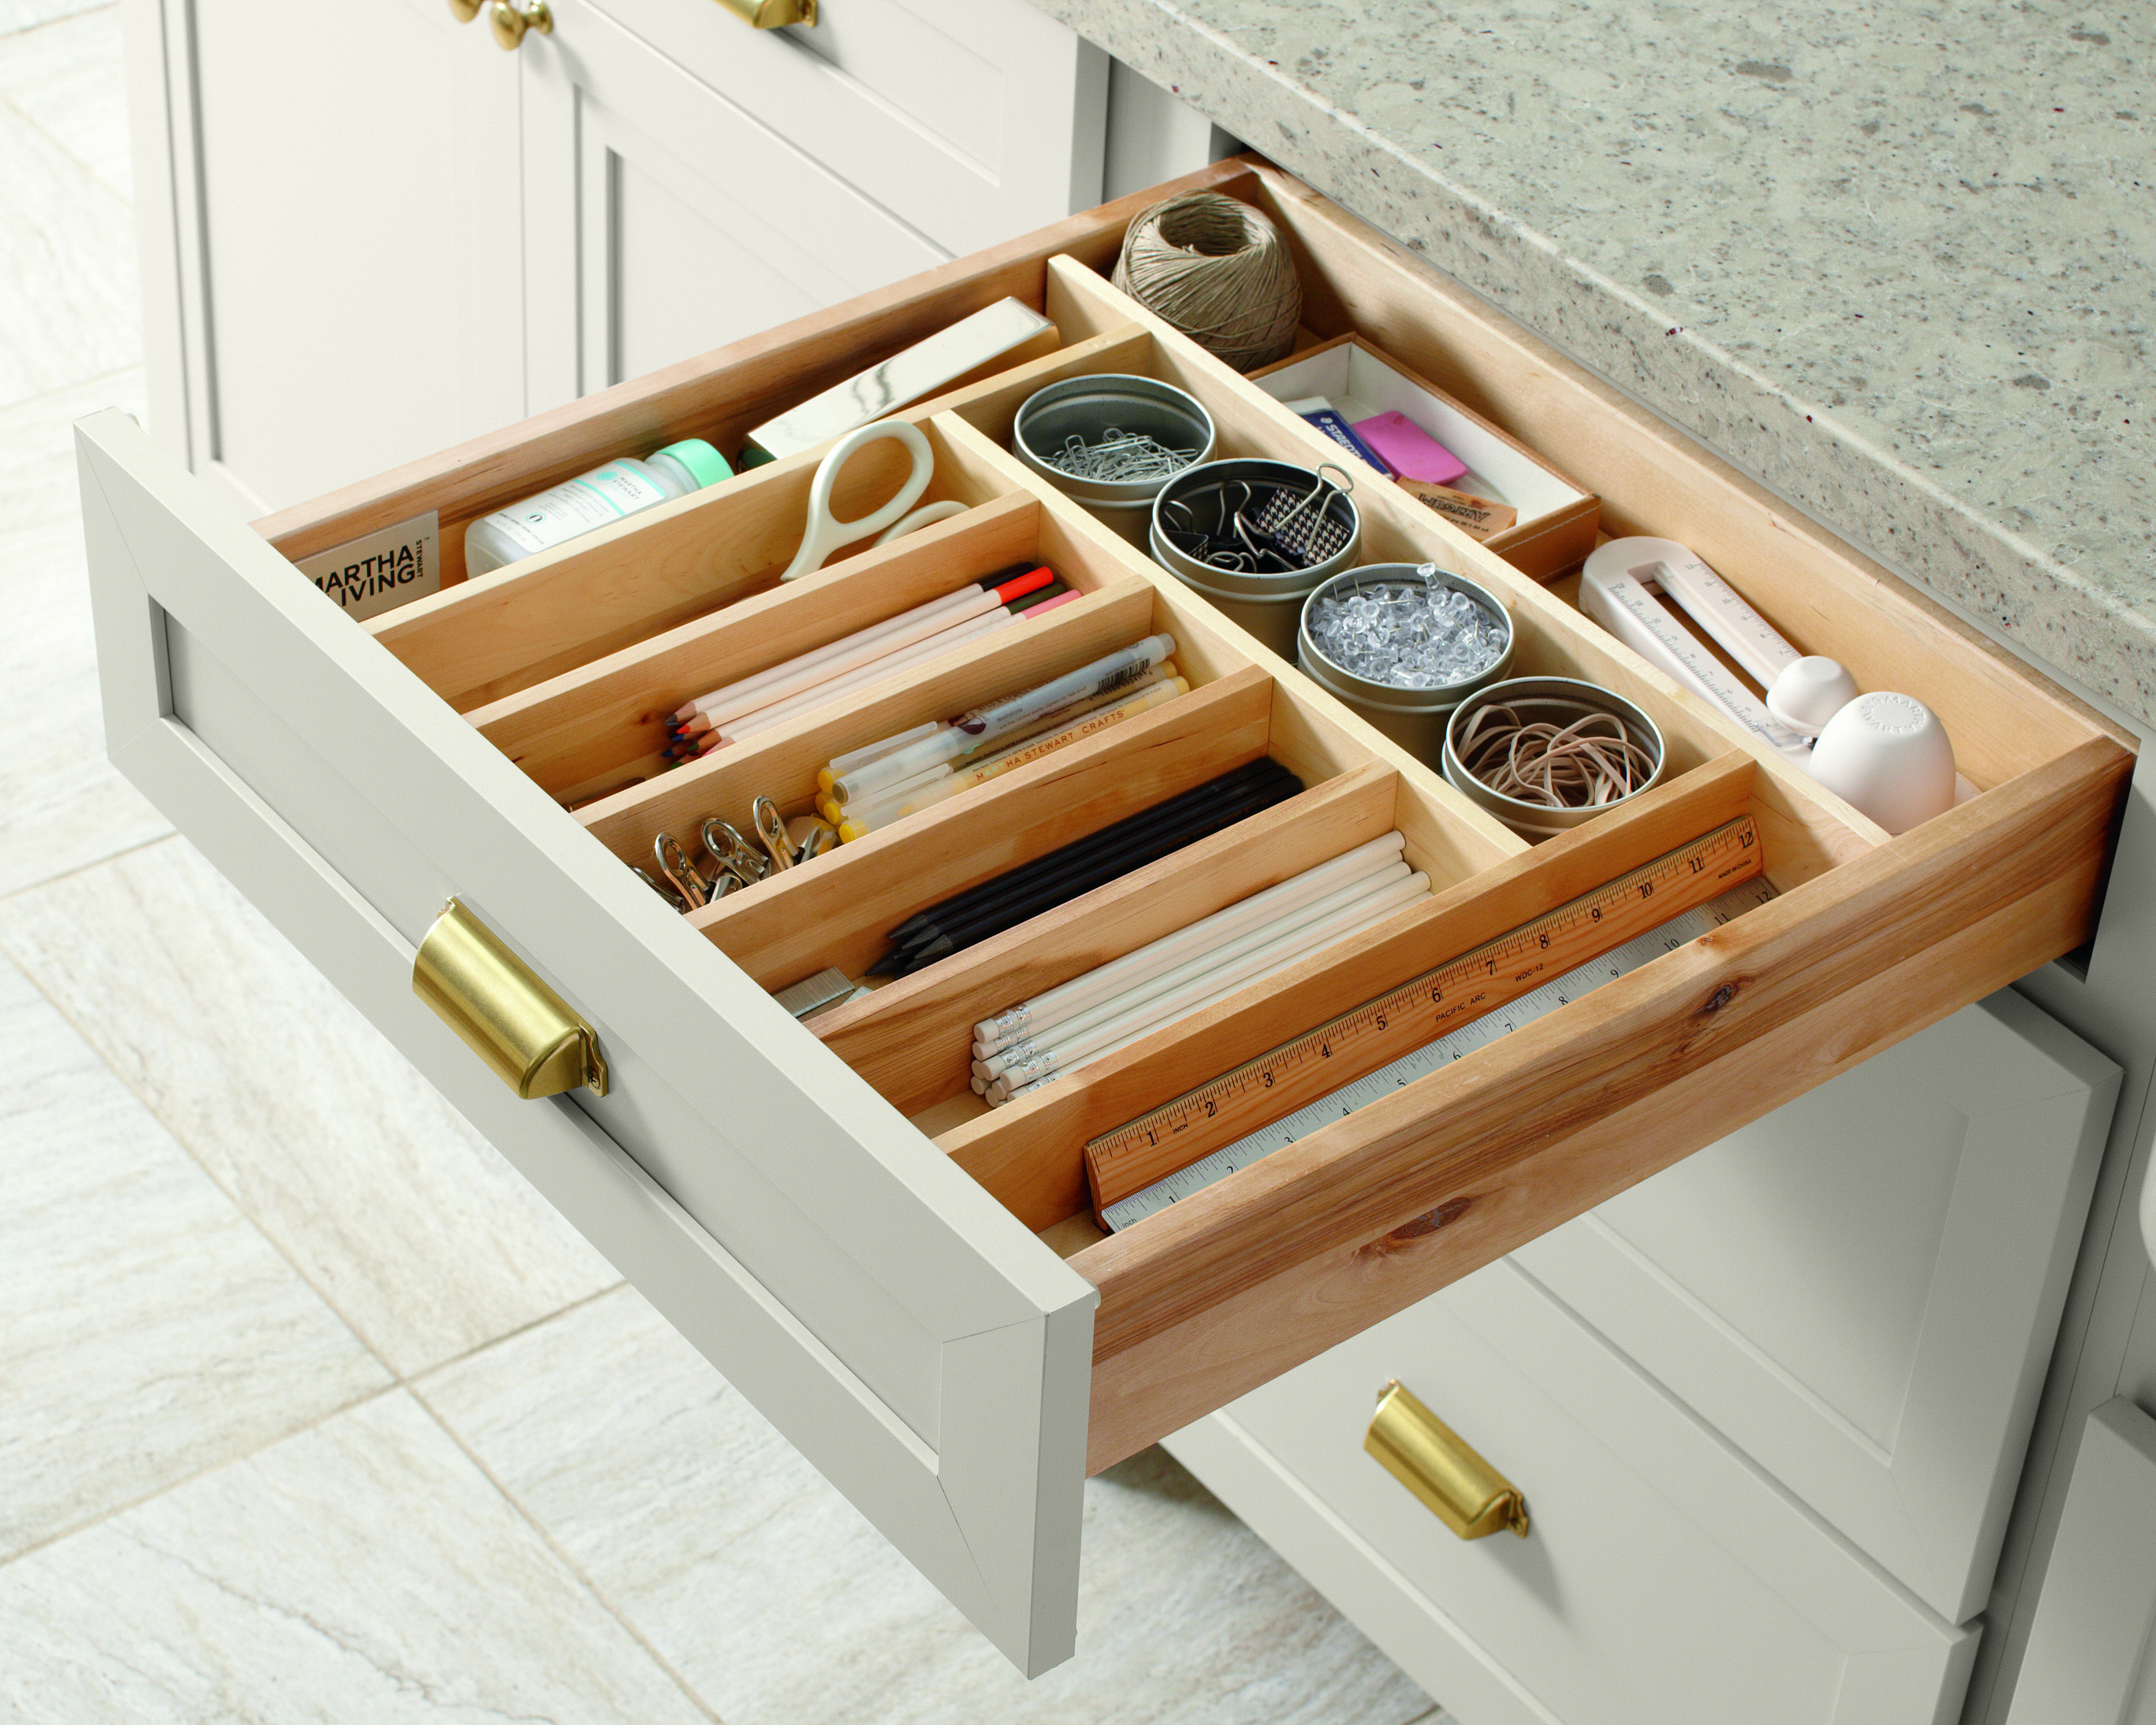 Kitchen Cabinet Drawer Organizers Keep Your Kitchen Organized With Built In Drawer